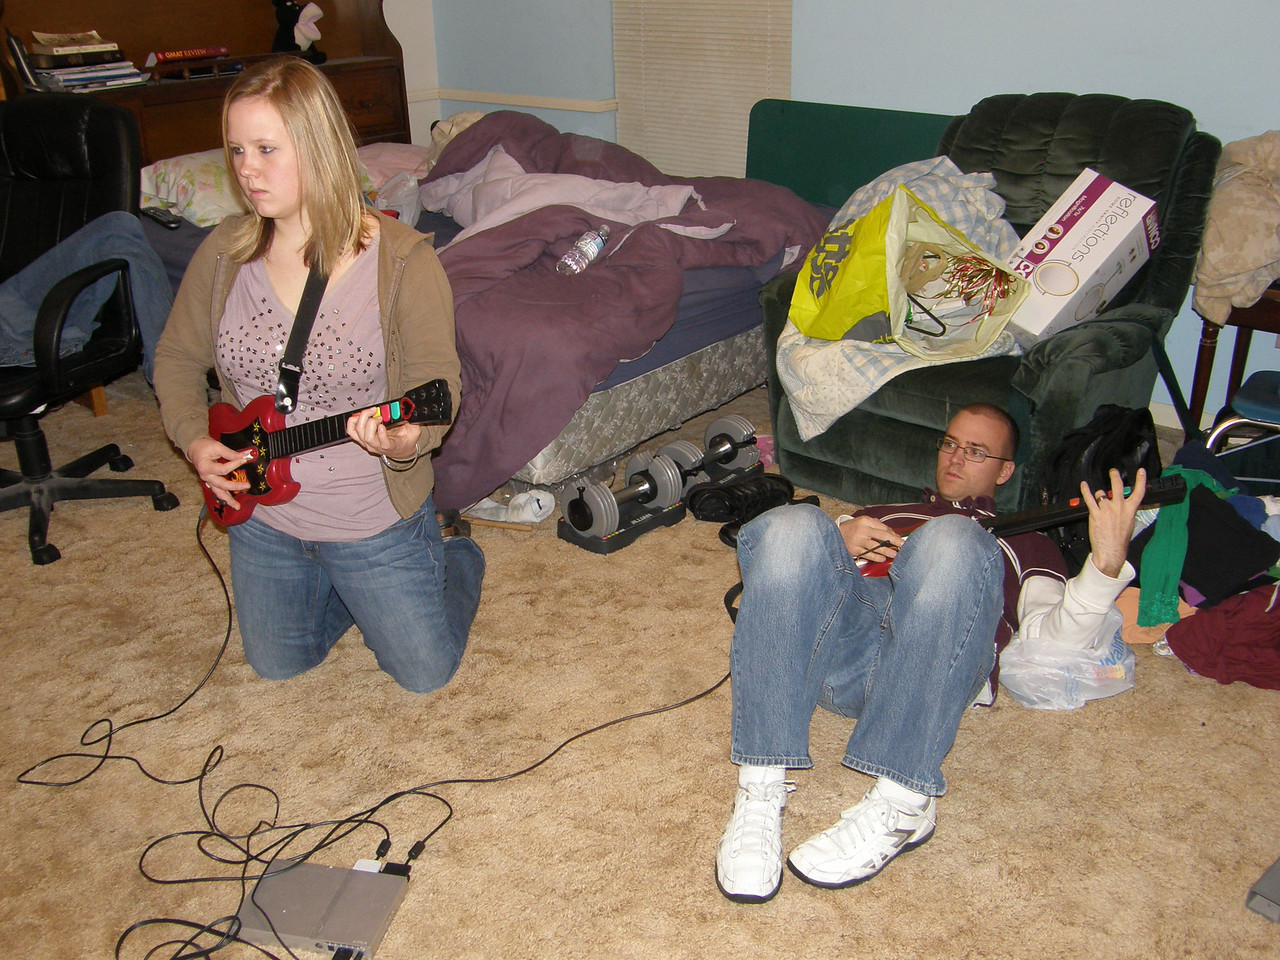 Although they look sad, they are really just intense.  They play Guitar Hero on some of the hardest settings!  Awesome.